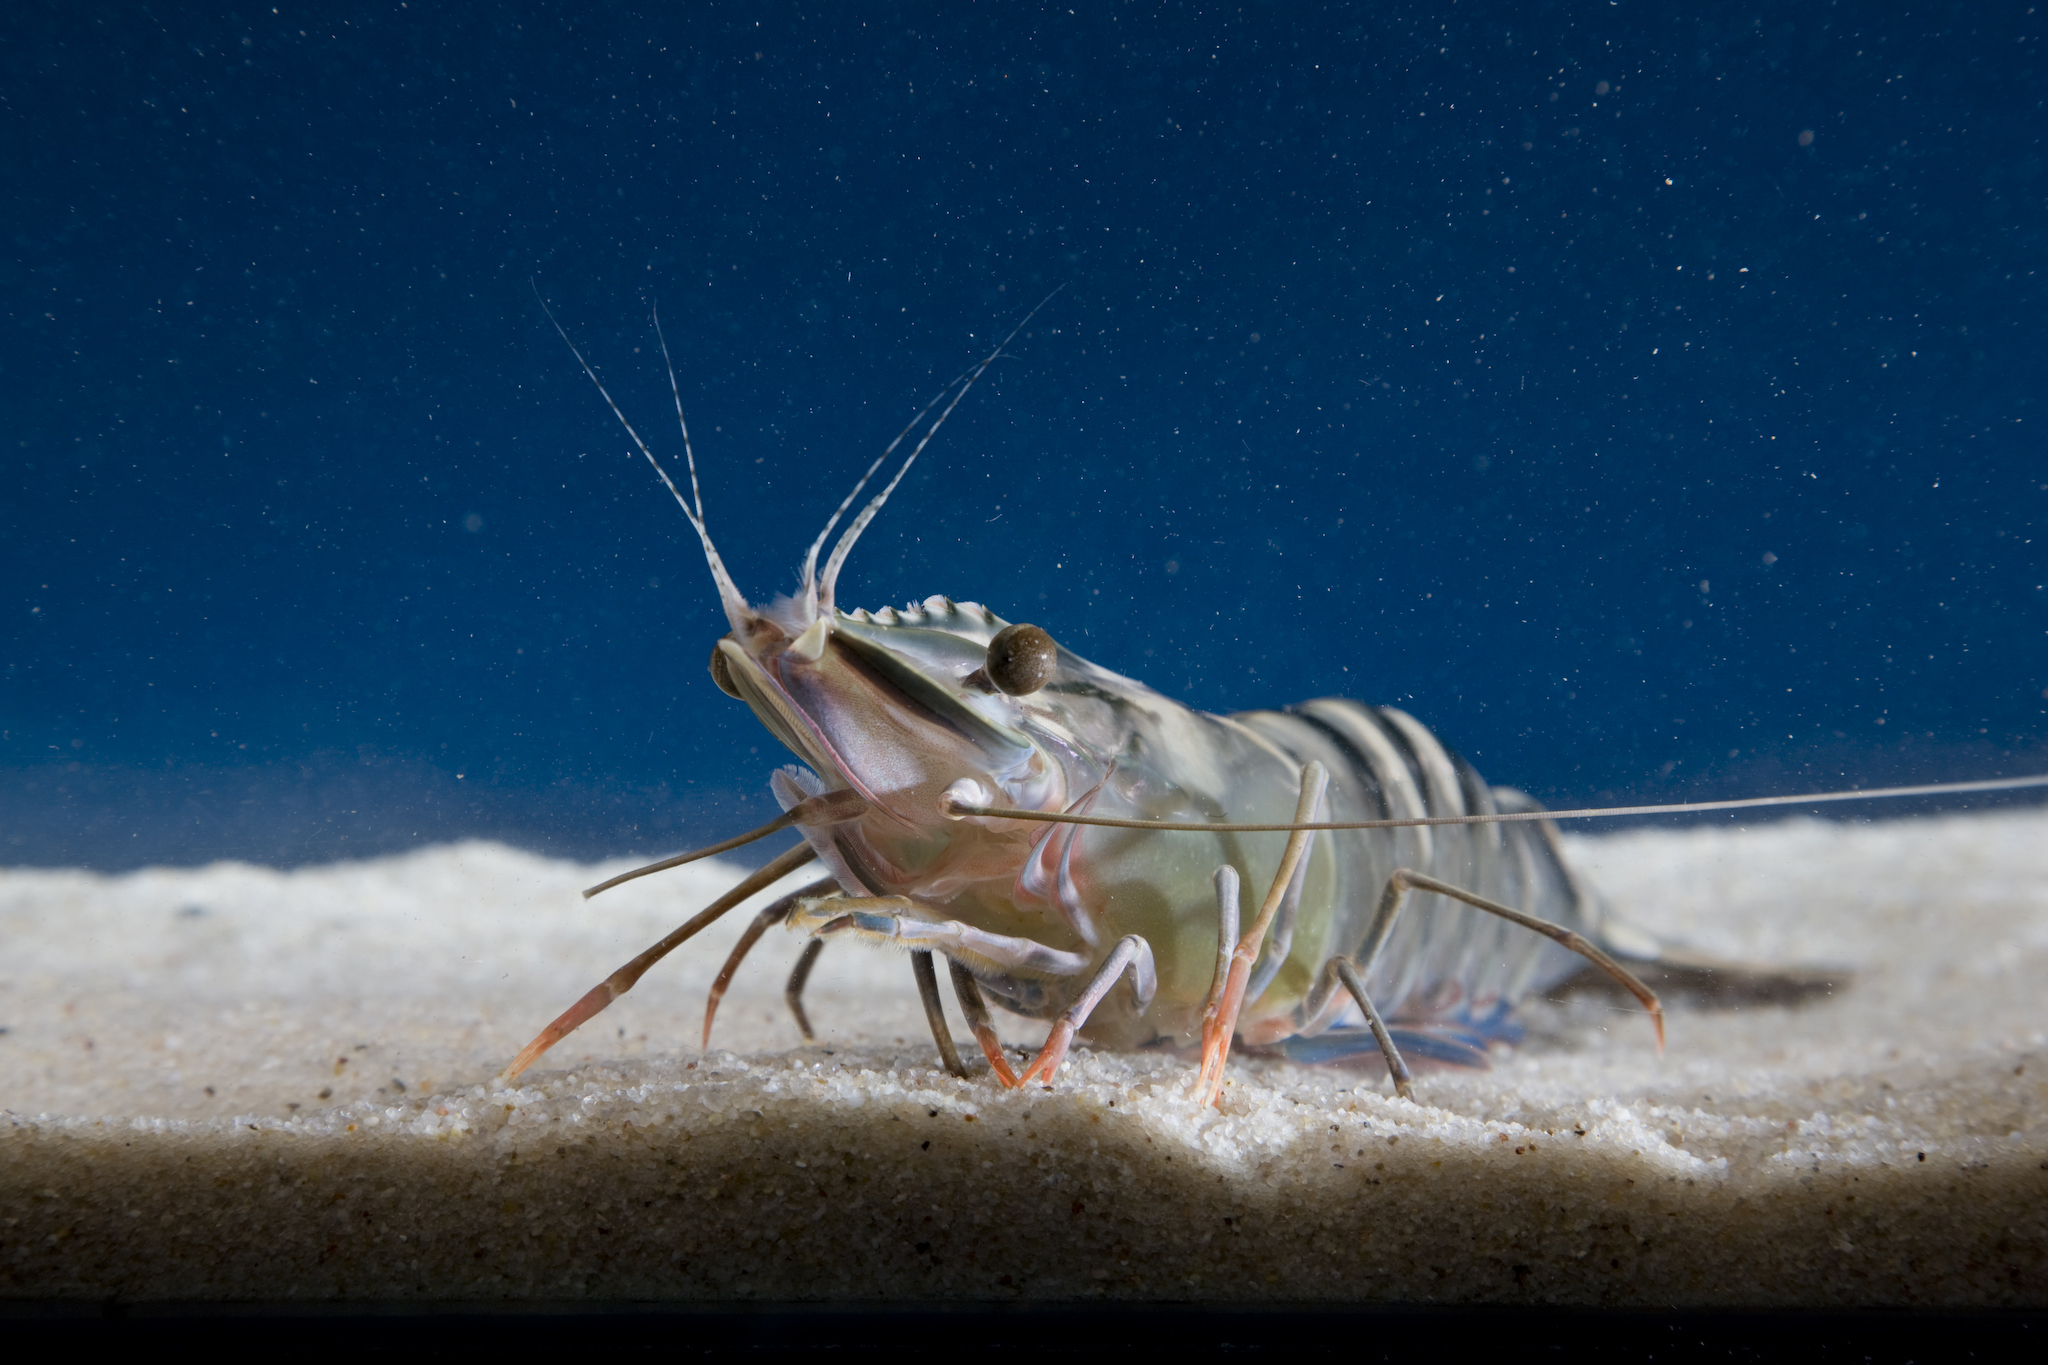 Farmed black tiger prawn in aquarium.